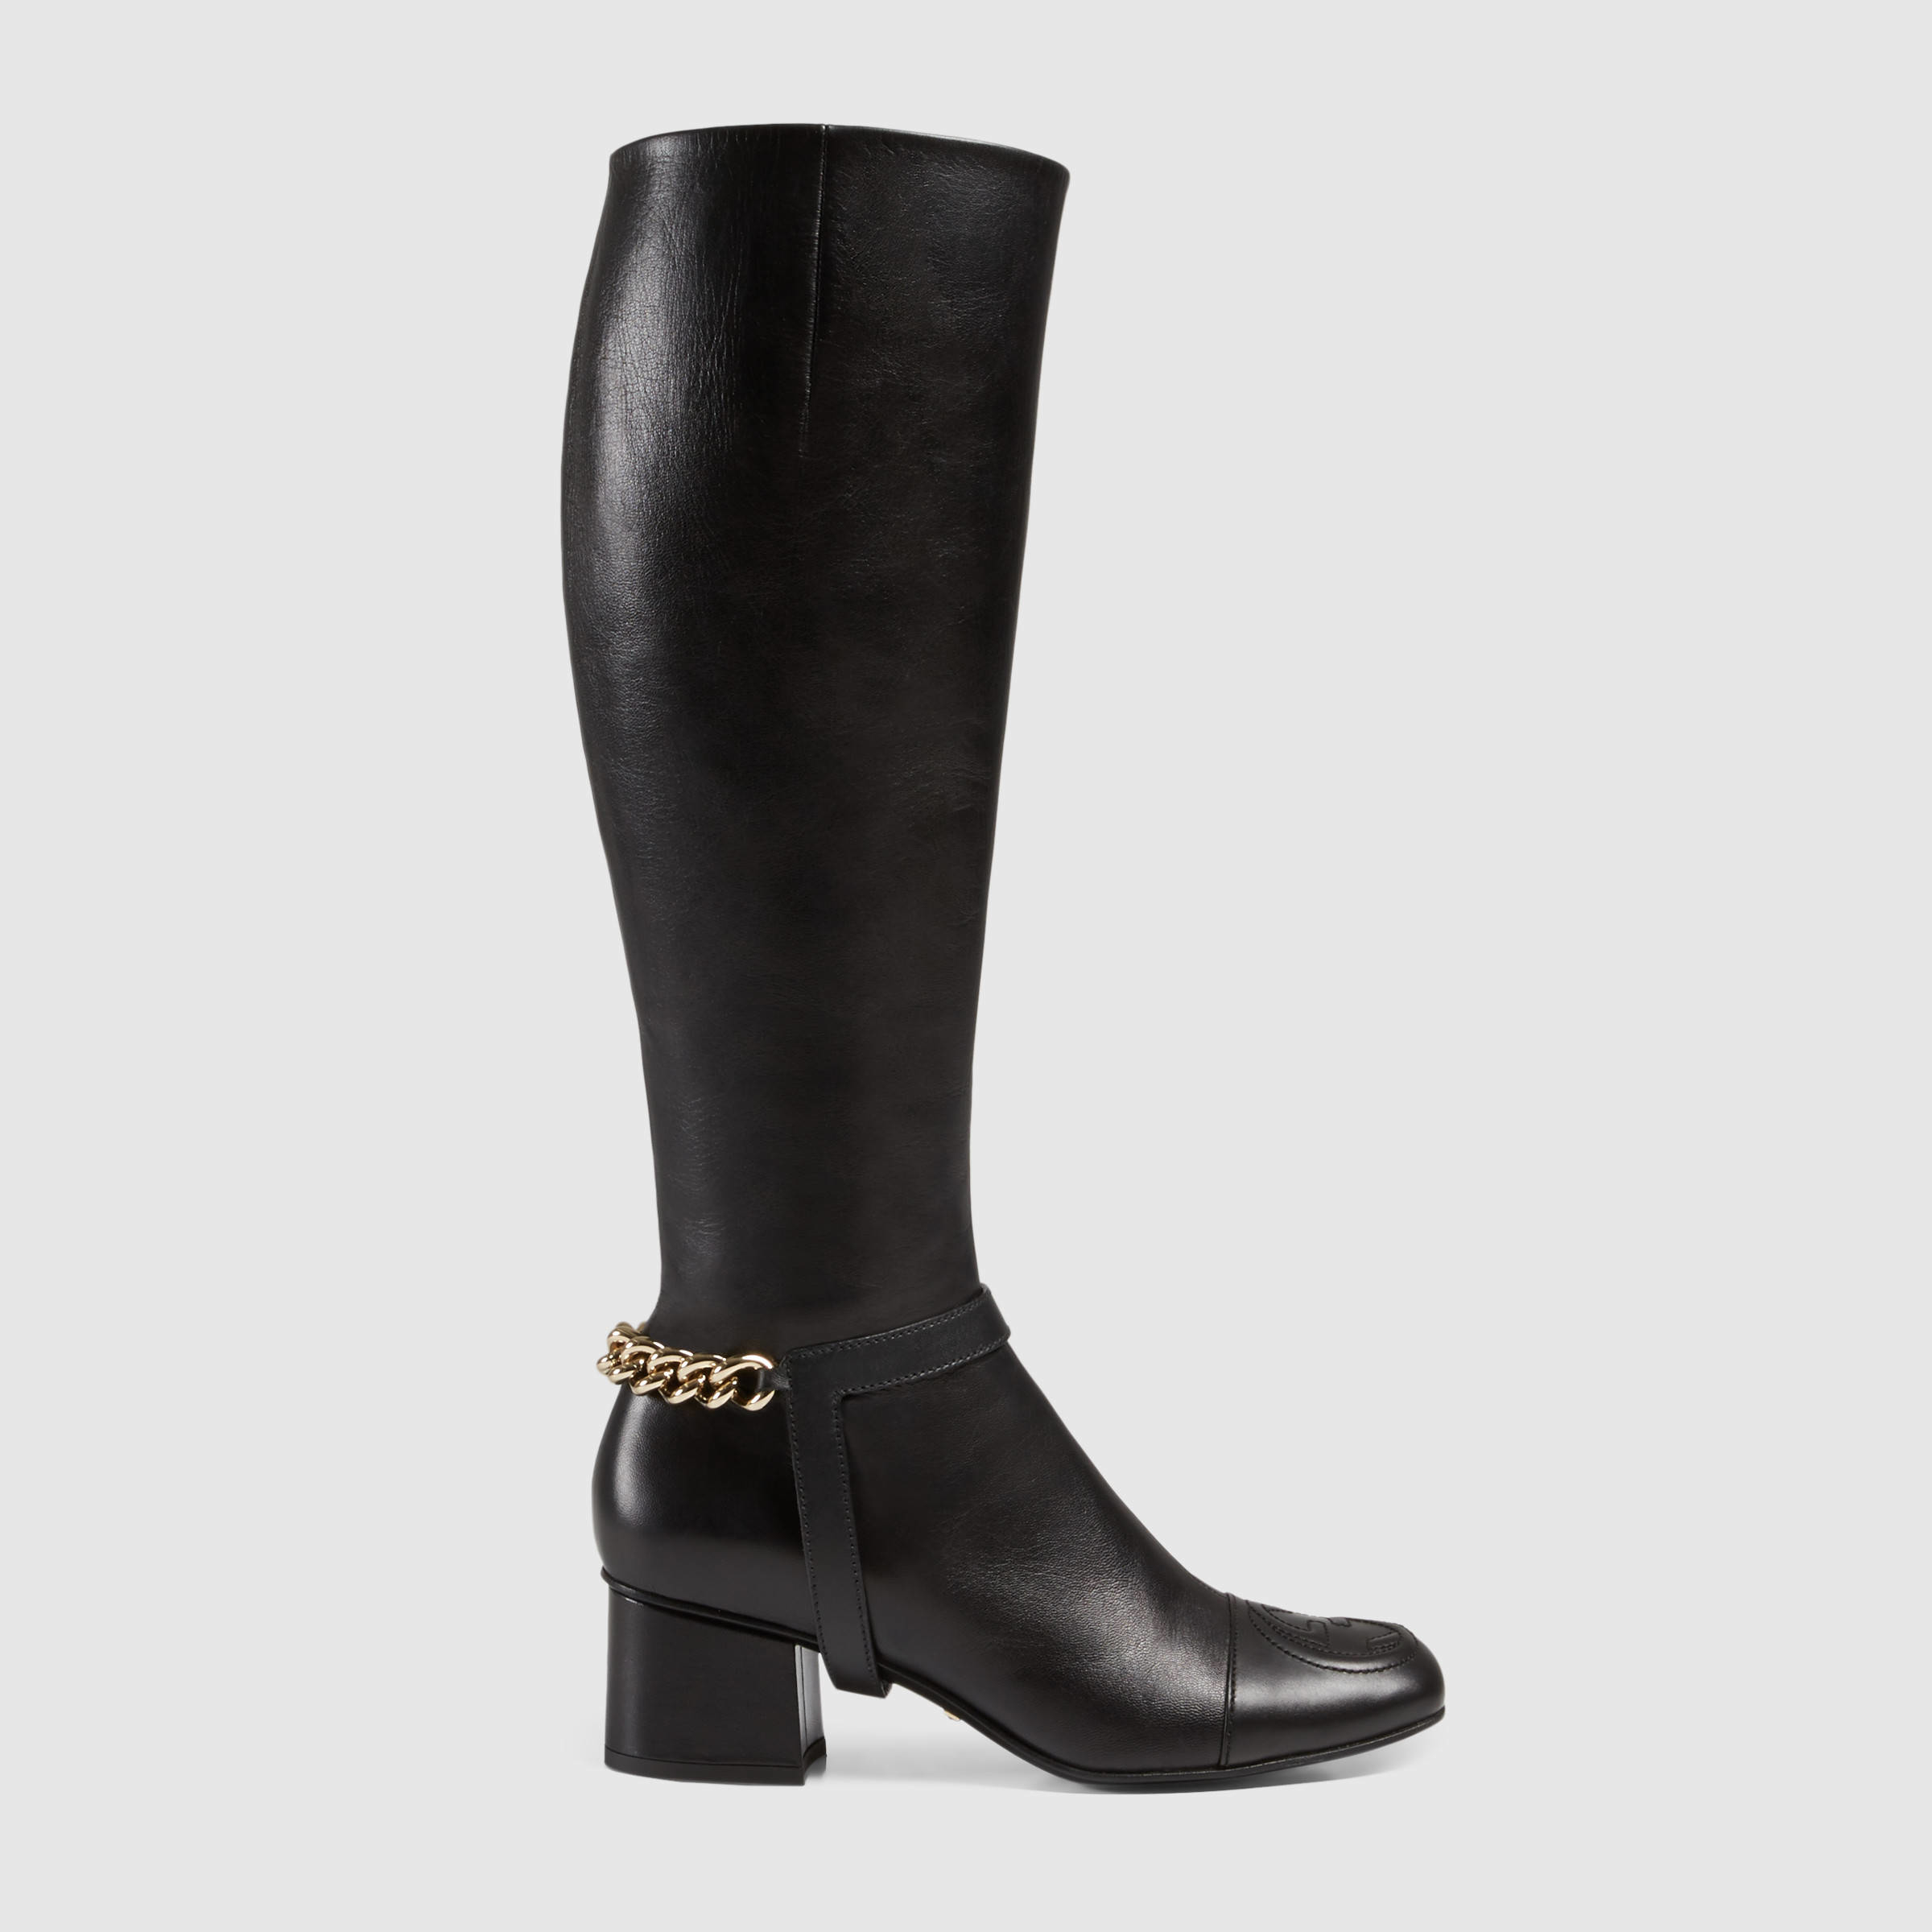 gucci soho leather knee boot in black black leather lyst